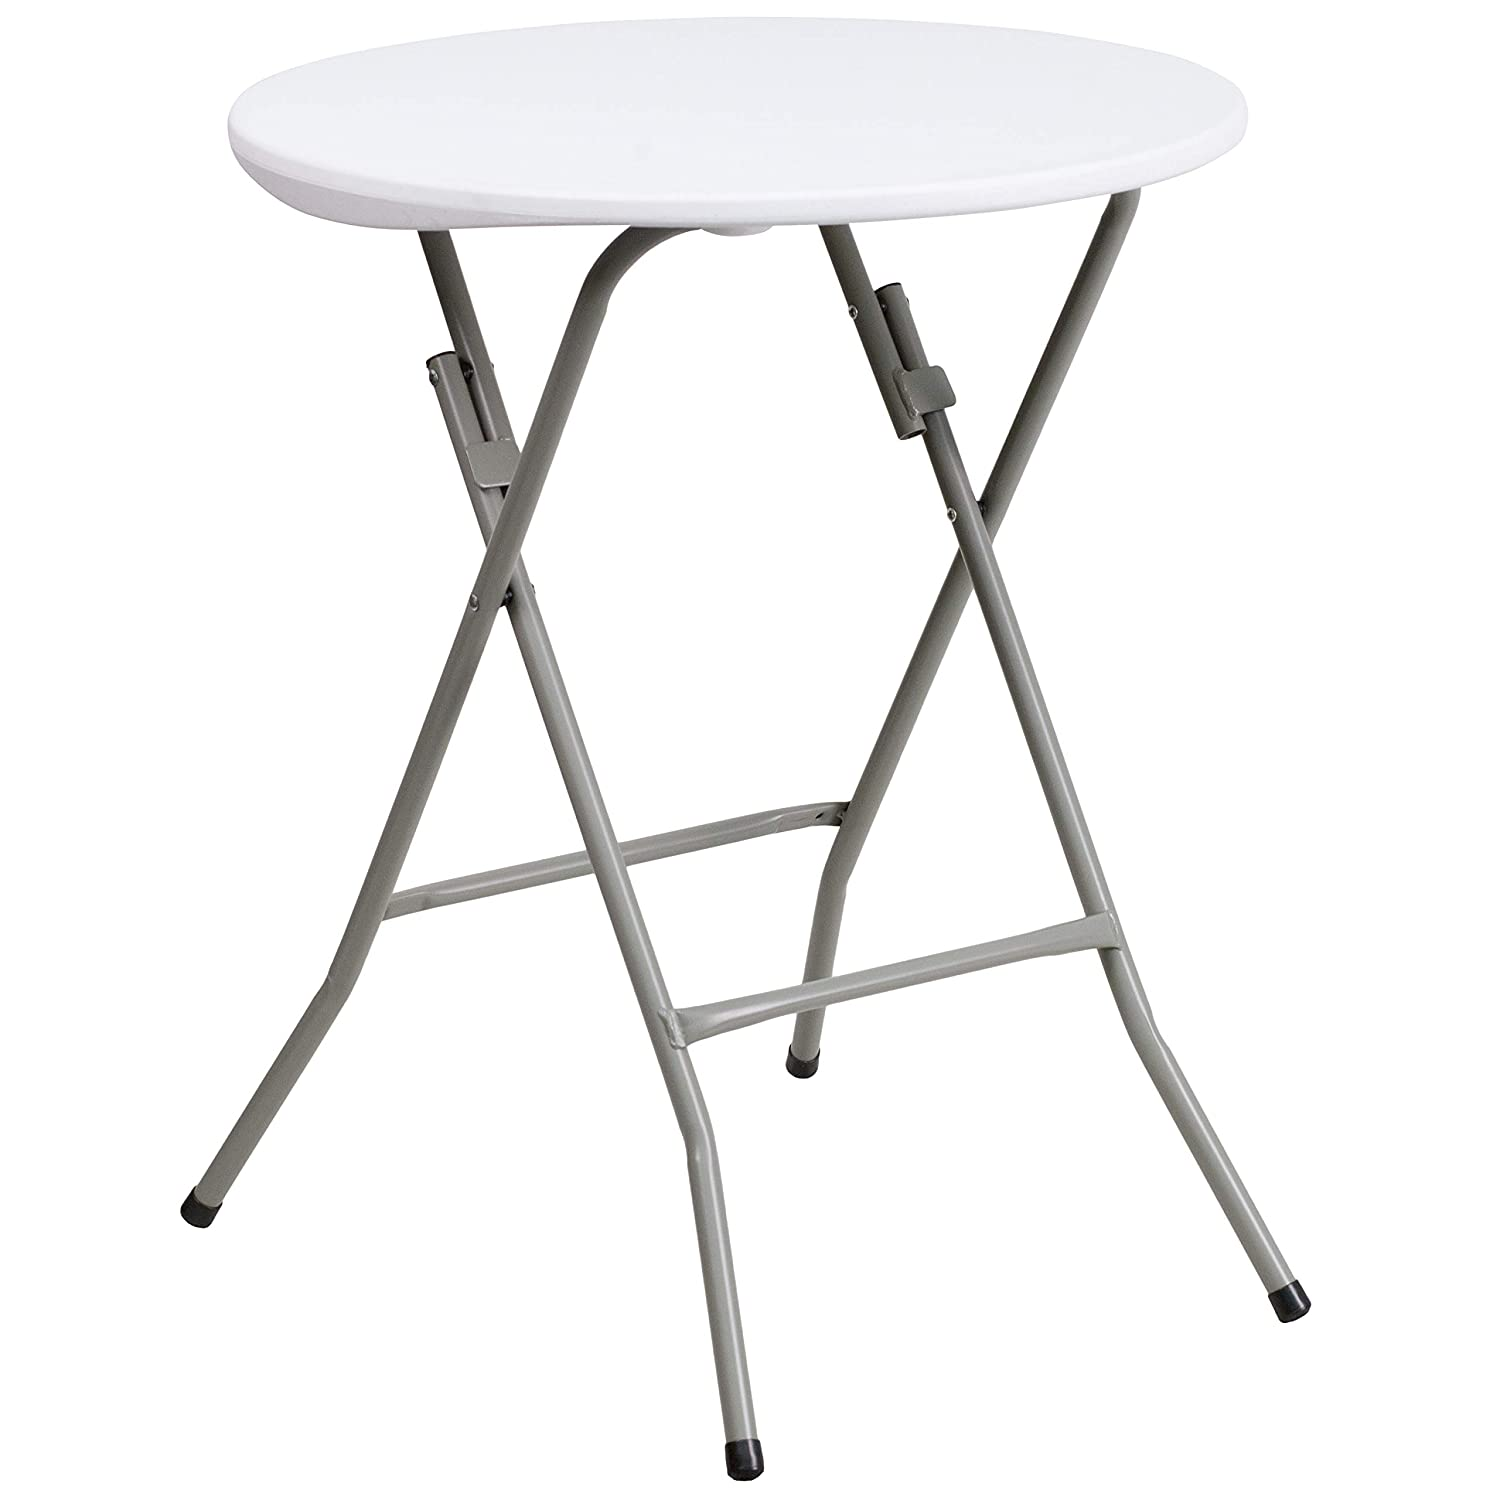 Flash Furniture 2-Foot Round Granite White Plastic Folding Table – DAD-YCZ-80R-1-SM-GW-GG